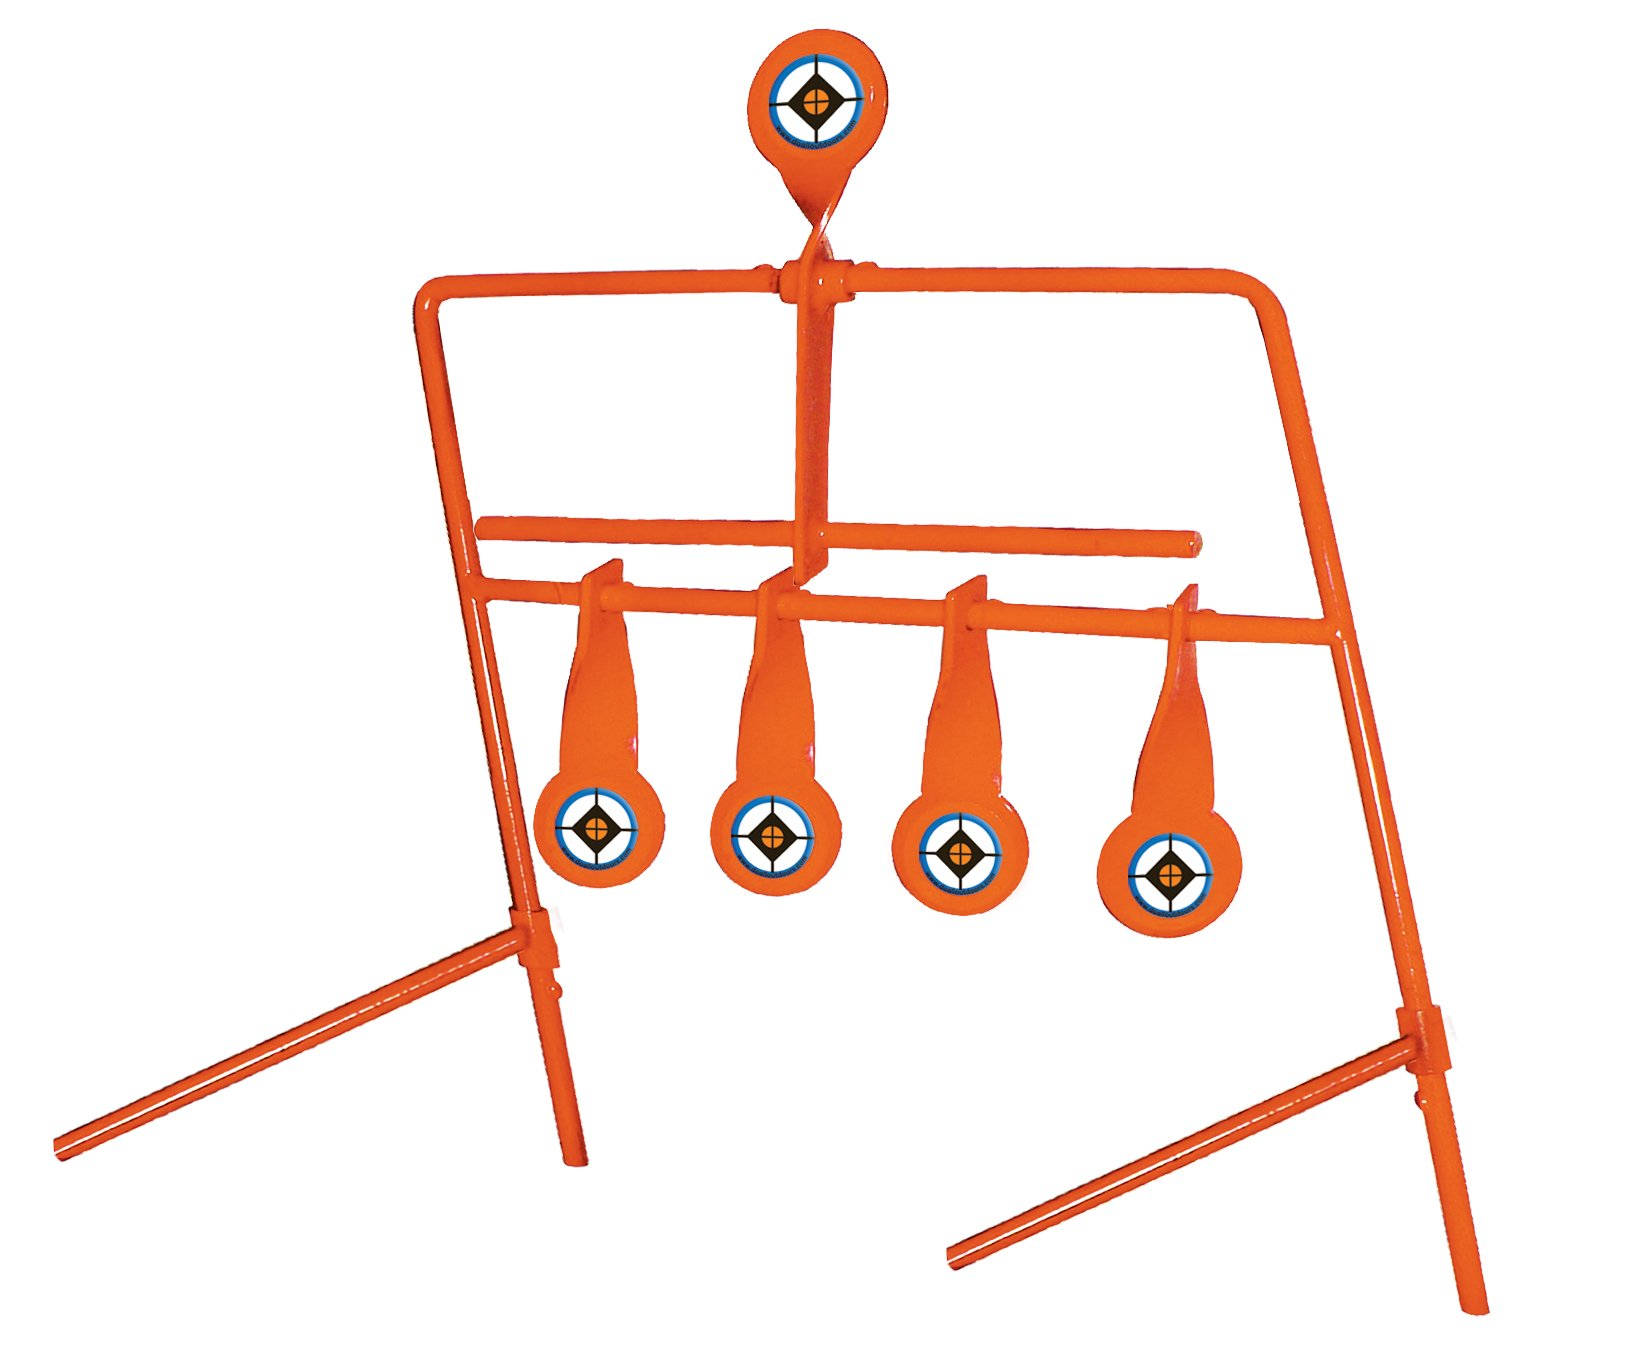 Do-All Outdoors JR .22 Auto Reset Target by Do-All Outdoors (Image #1)